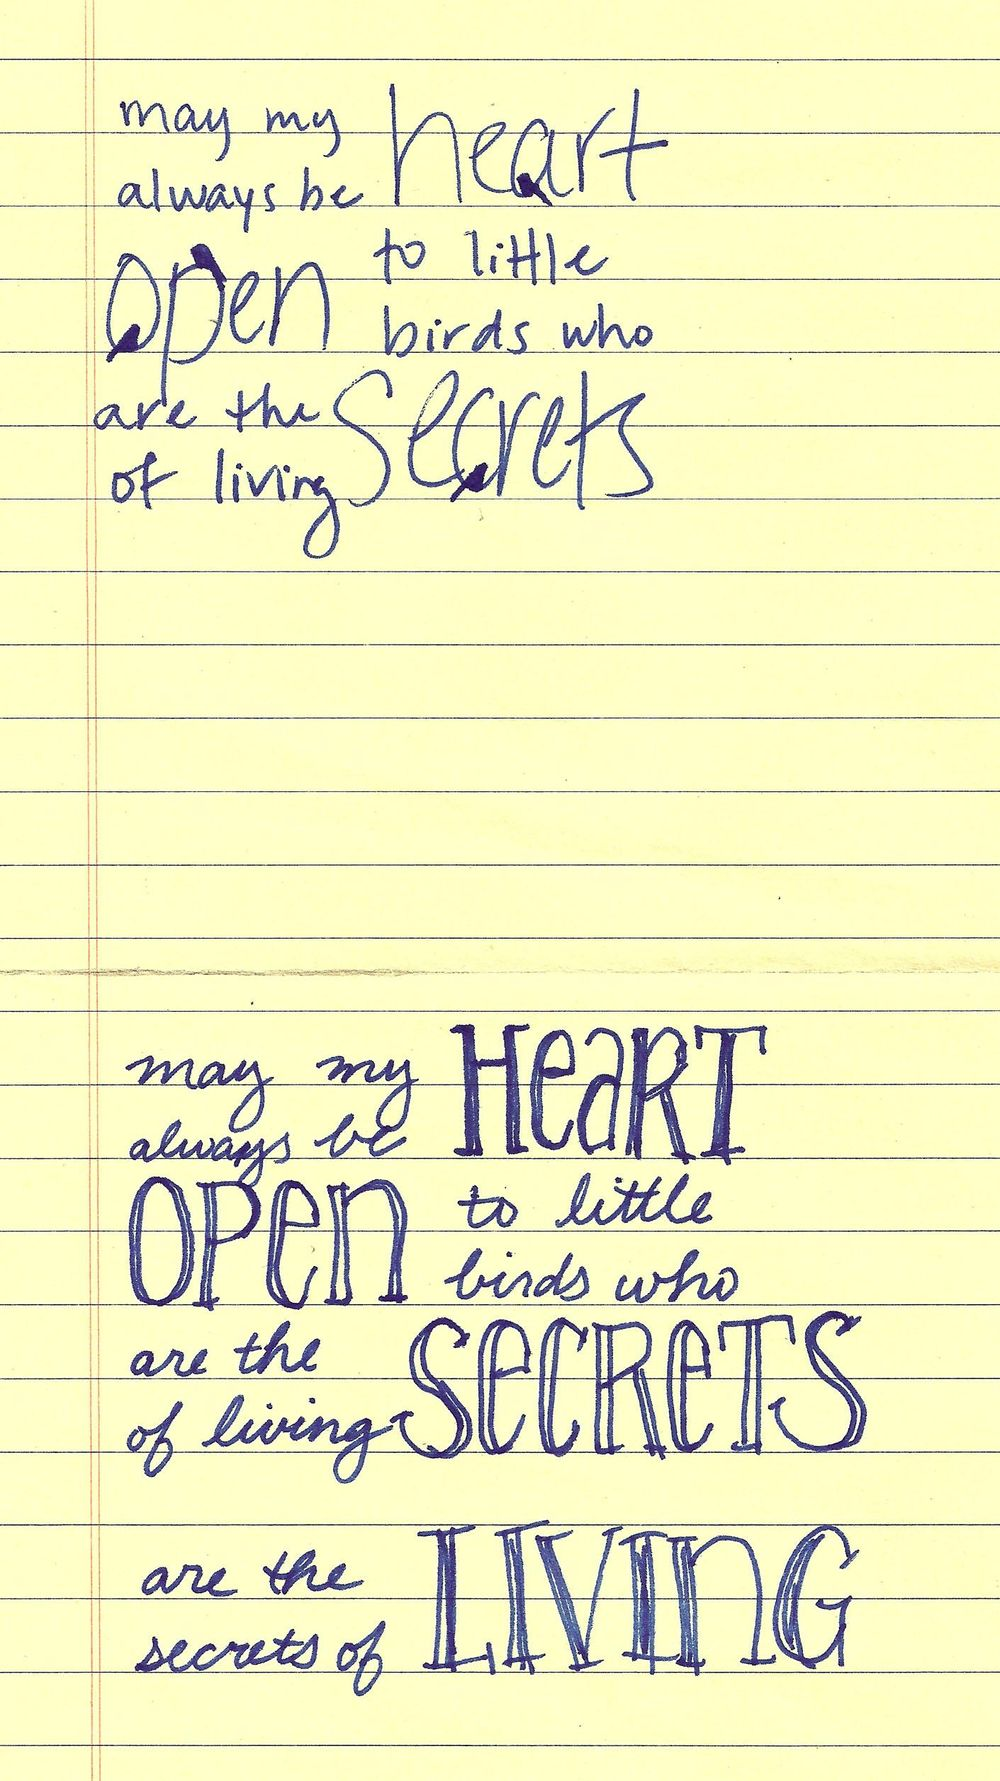 May my heart always be open - image 3 - student project